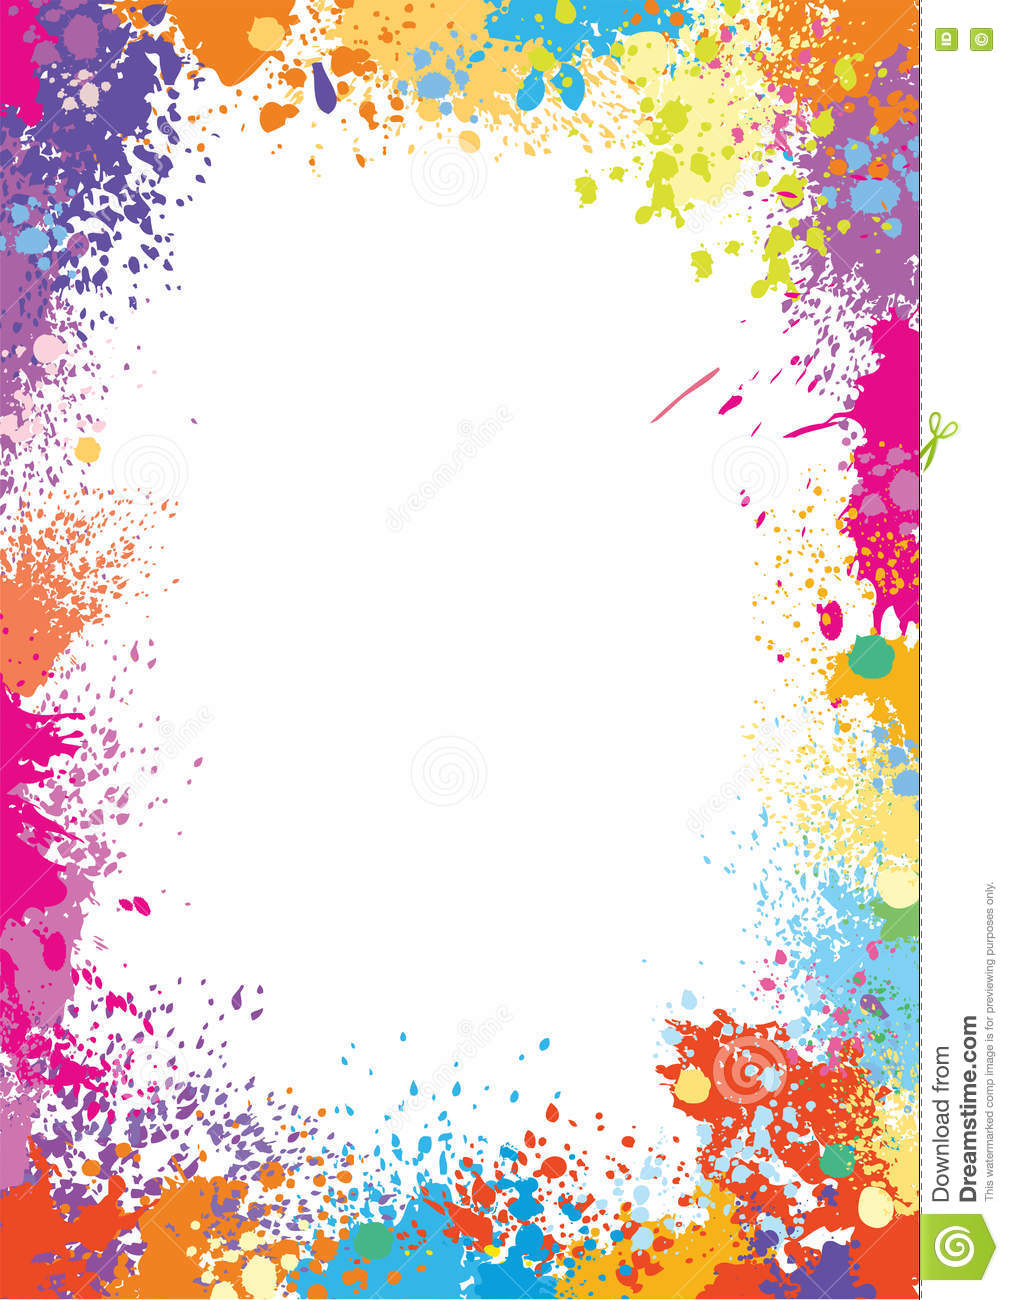 frame template made of paint stains stock vector illustration of rainbow frame 71441322. Black Bedroom Furniture Sets. Home Design Ideas